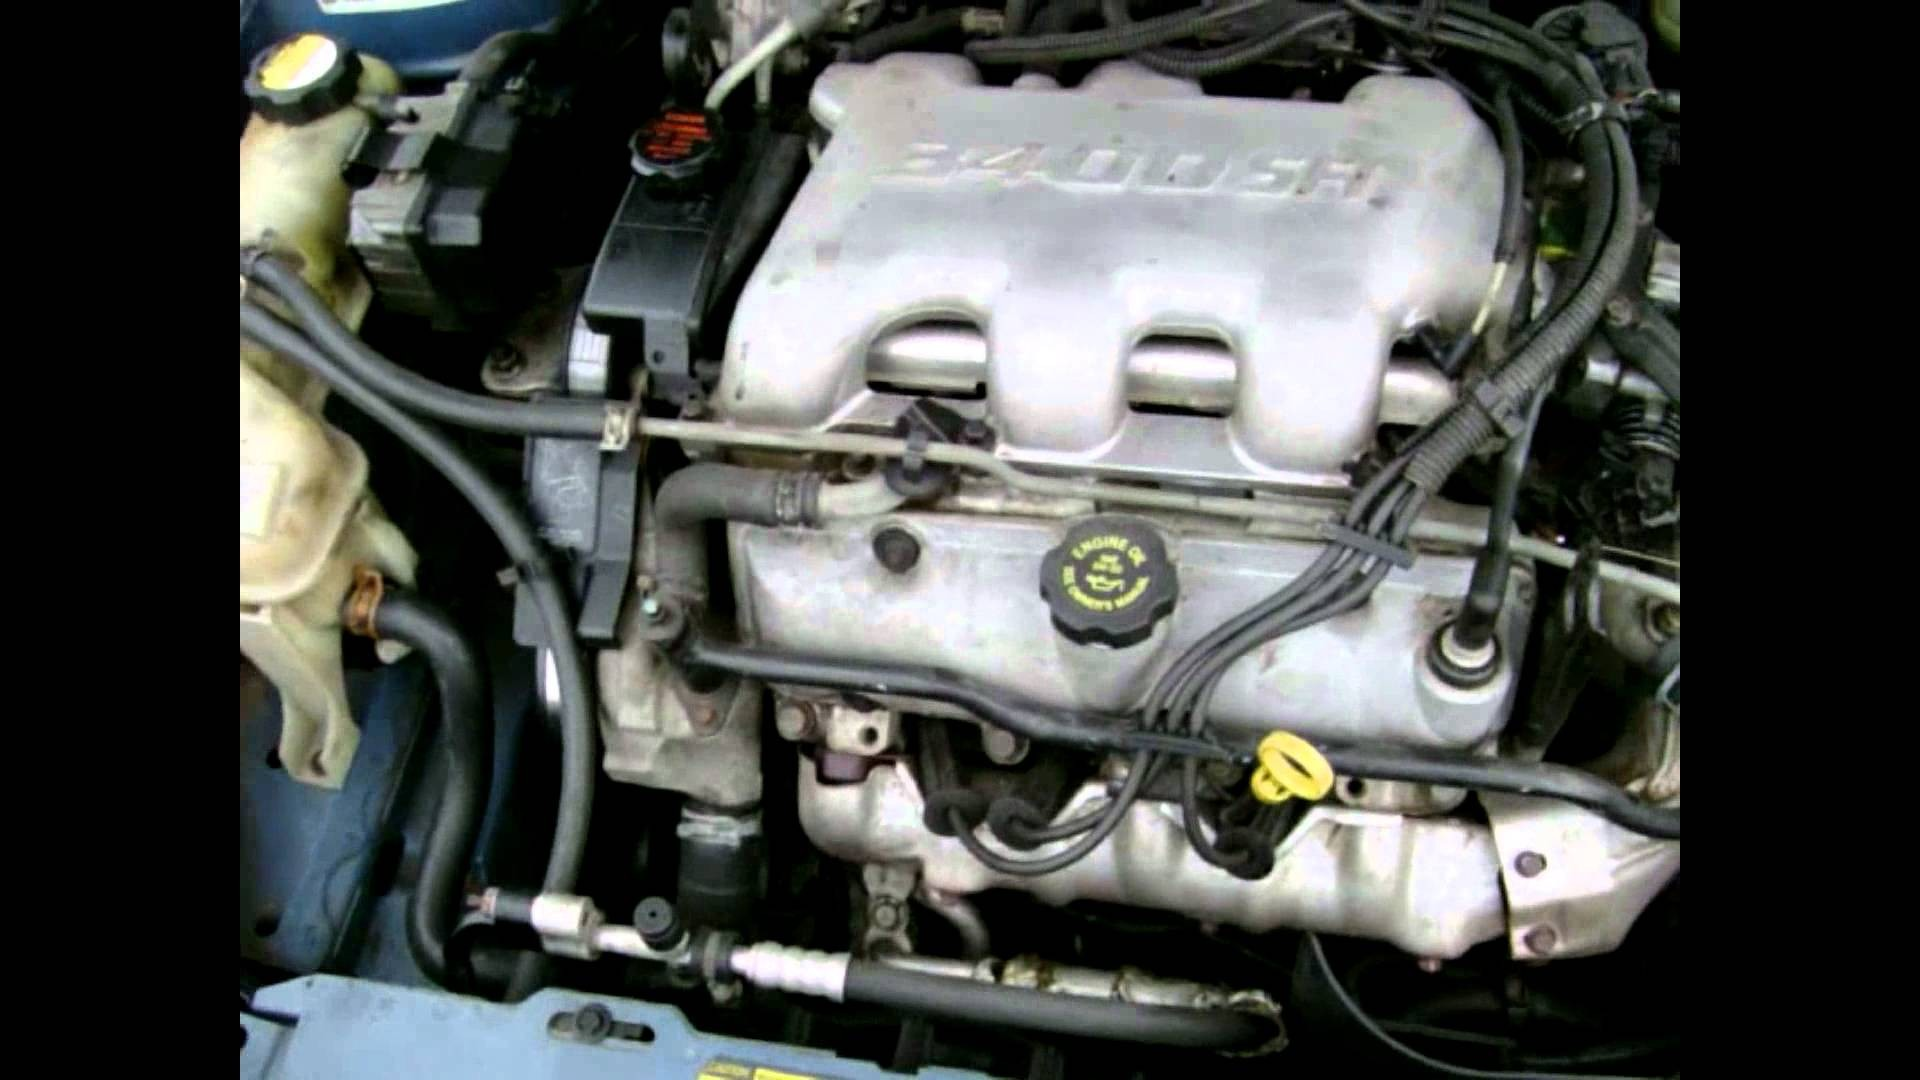 Chevy Impala 3800 V6 Engine Diagram Get Free Image About Wiring